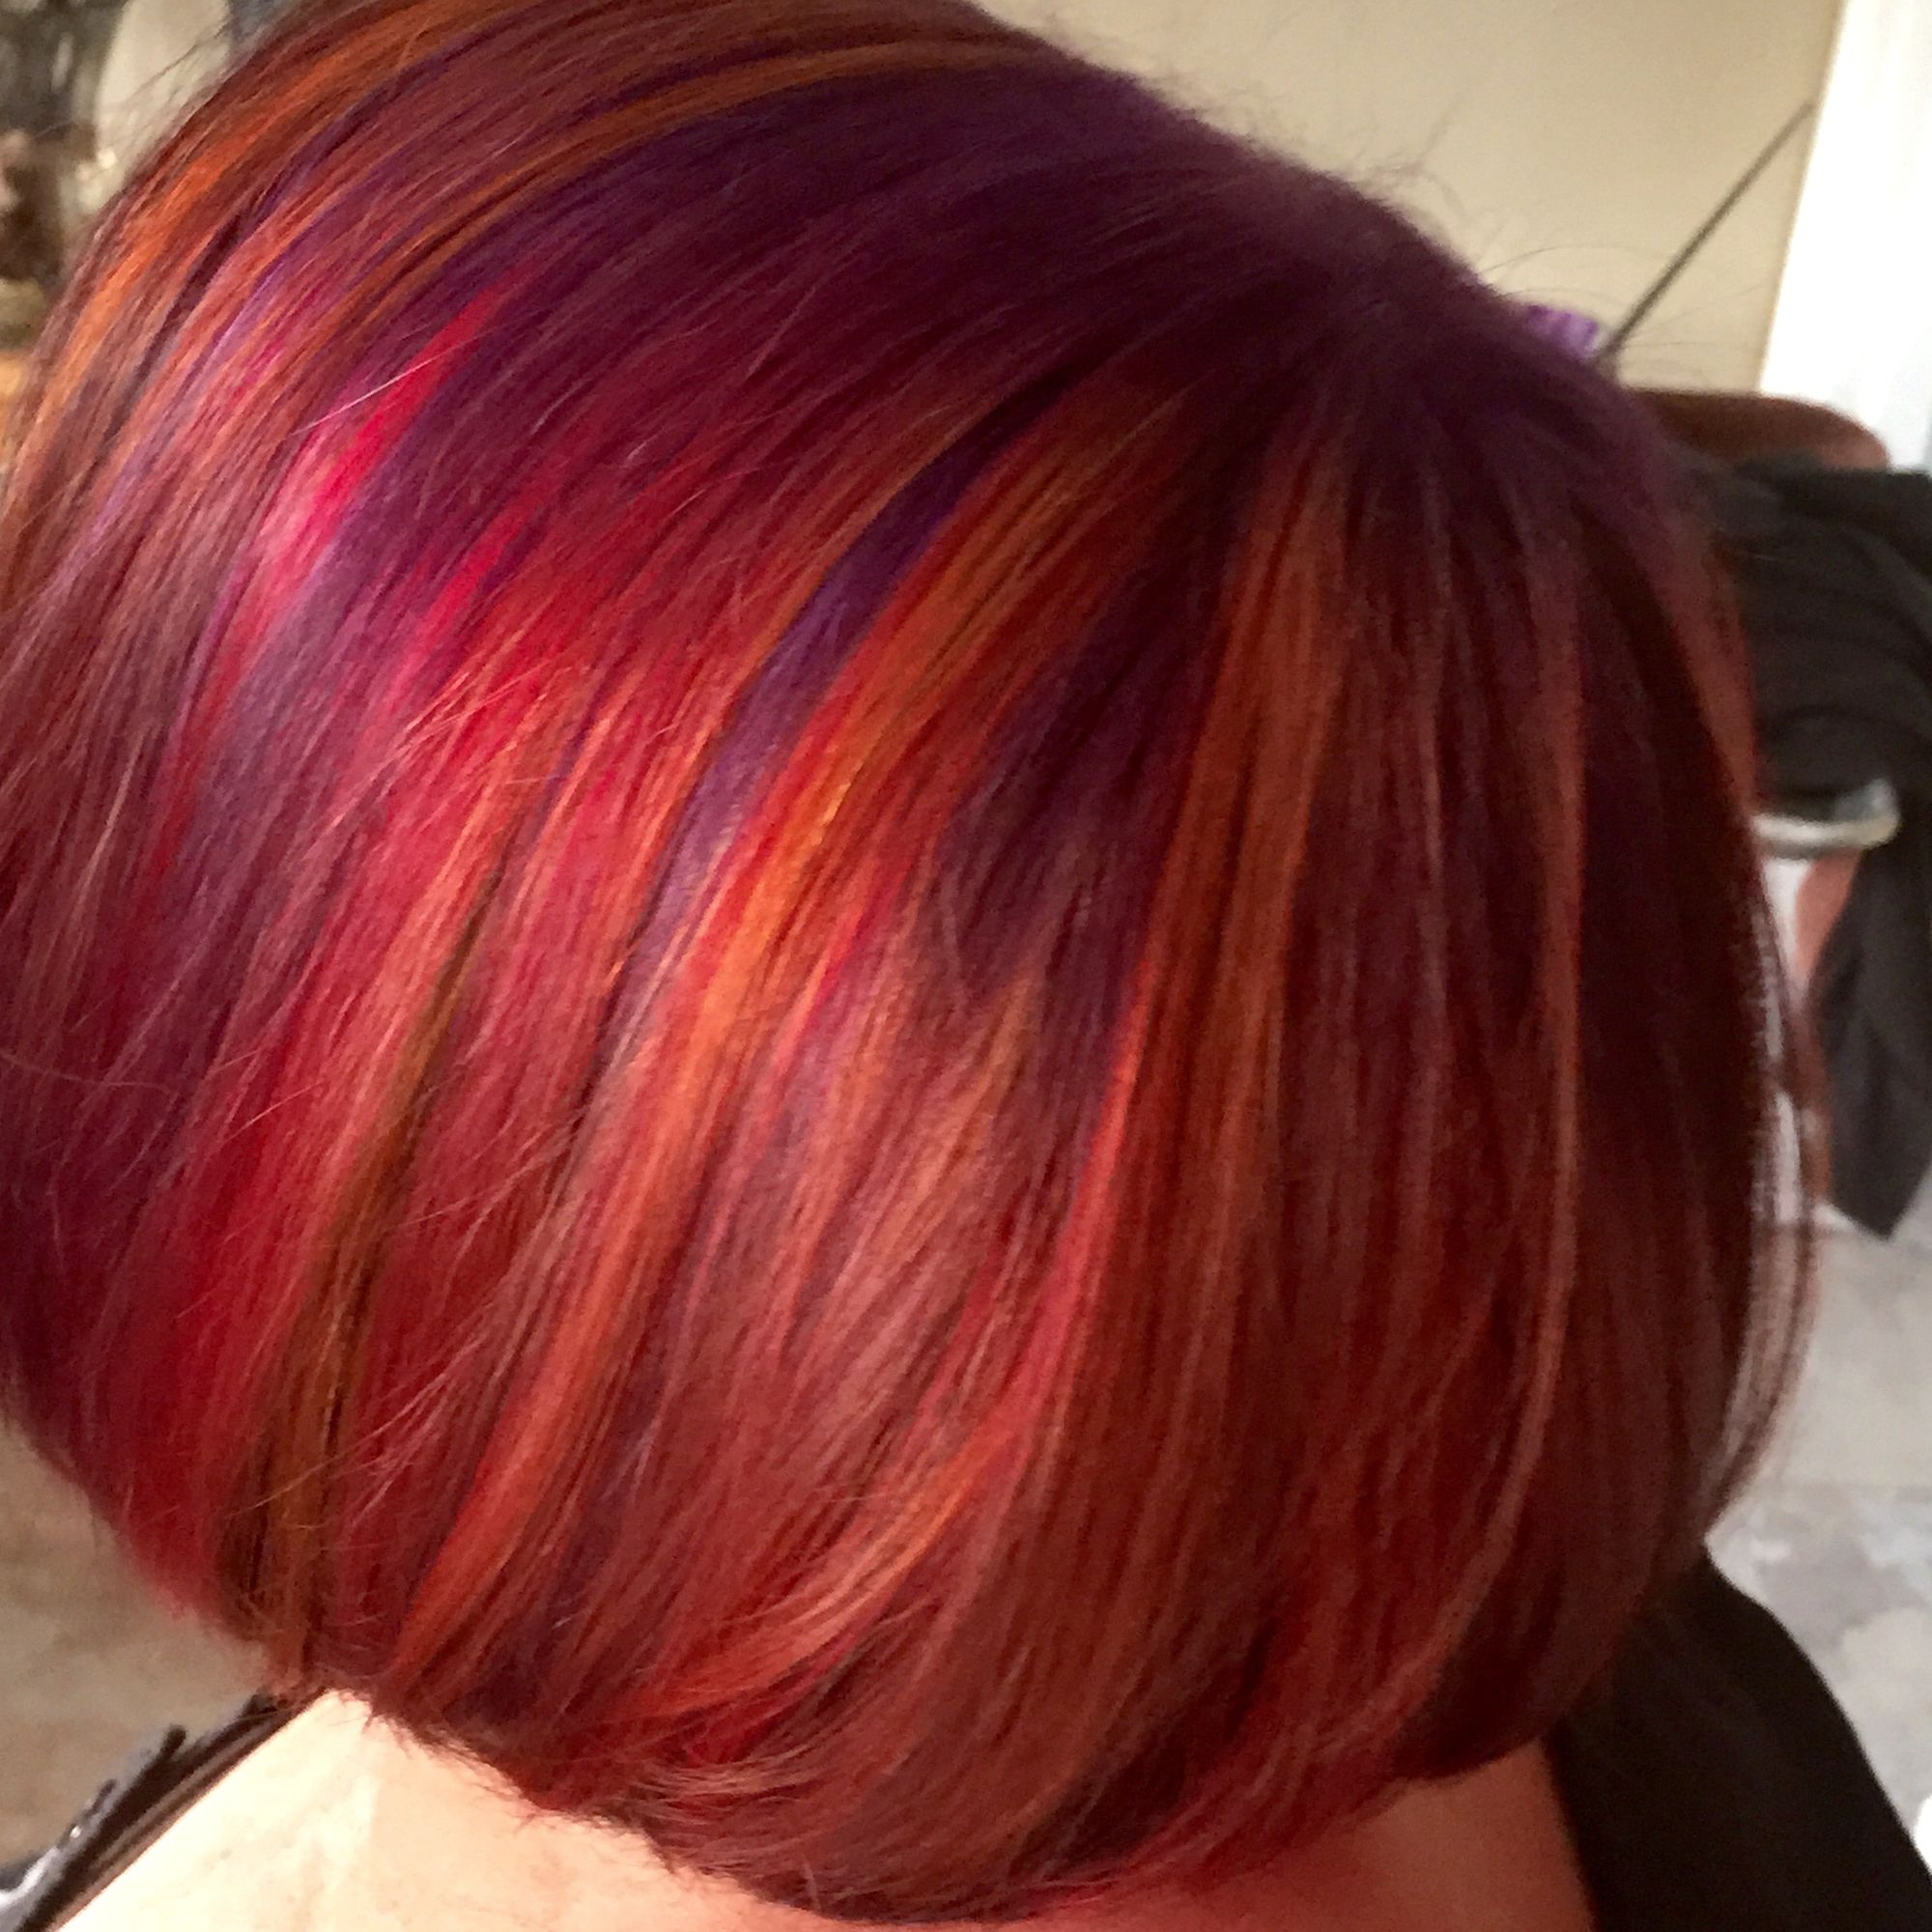 A Delicious Blend Of Purple, Red, Orange, And Blue | Hairstyles Intended For Burgundy And Tangerine Piecey Bob Hairstyles (Gallery 8 of 20)